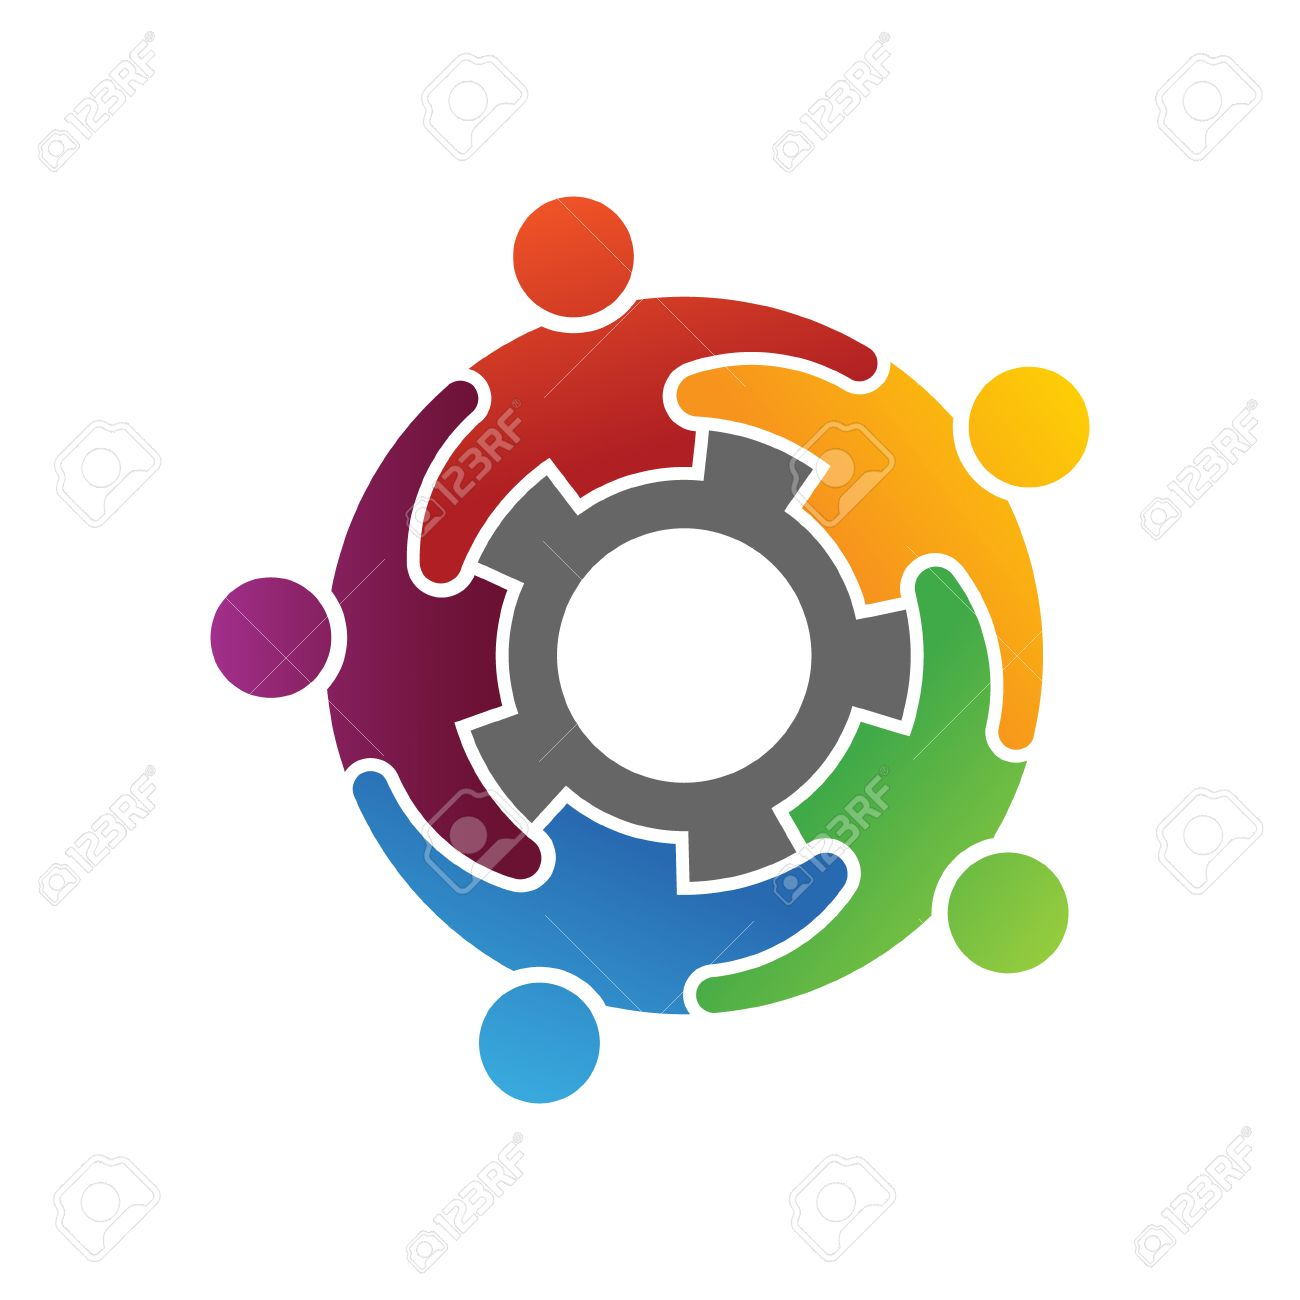 Group Of Diverse People Working Together Logo Concept Royalty Free